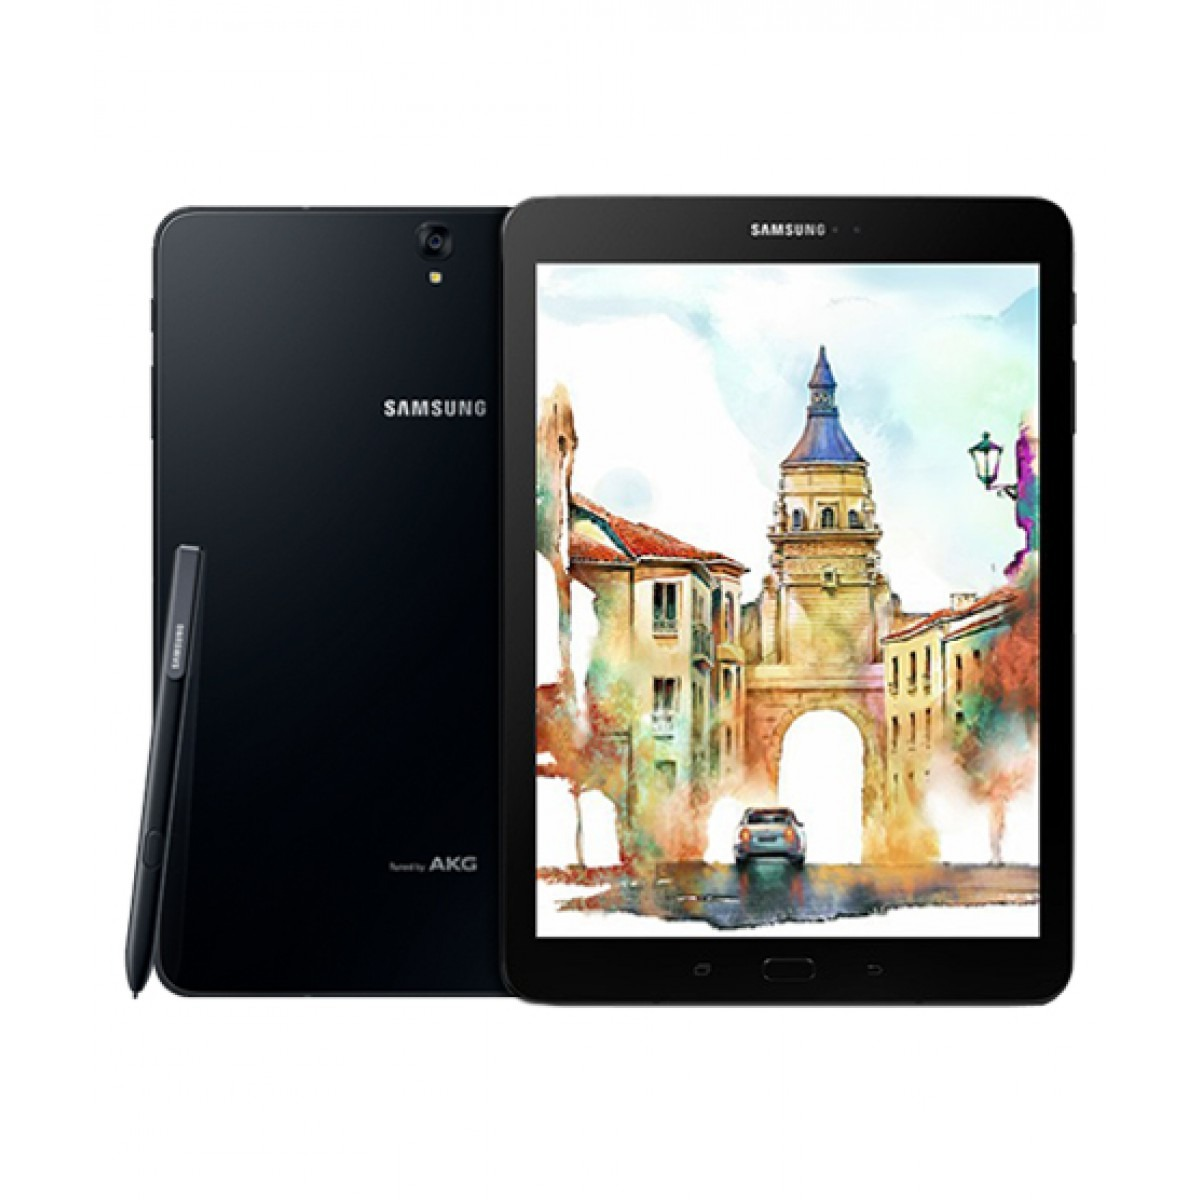 Samsung galaxy tab s3 price in pakistan home shopping for Samsung j tablet price